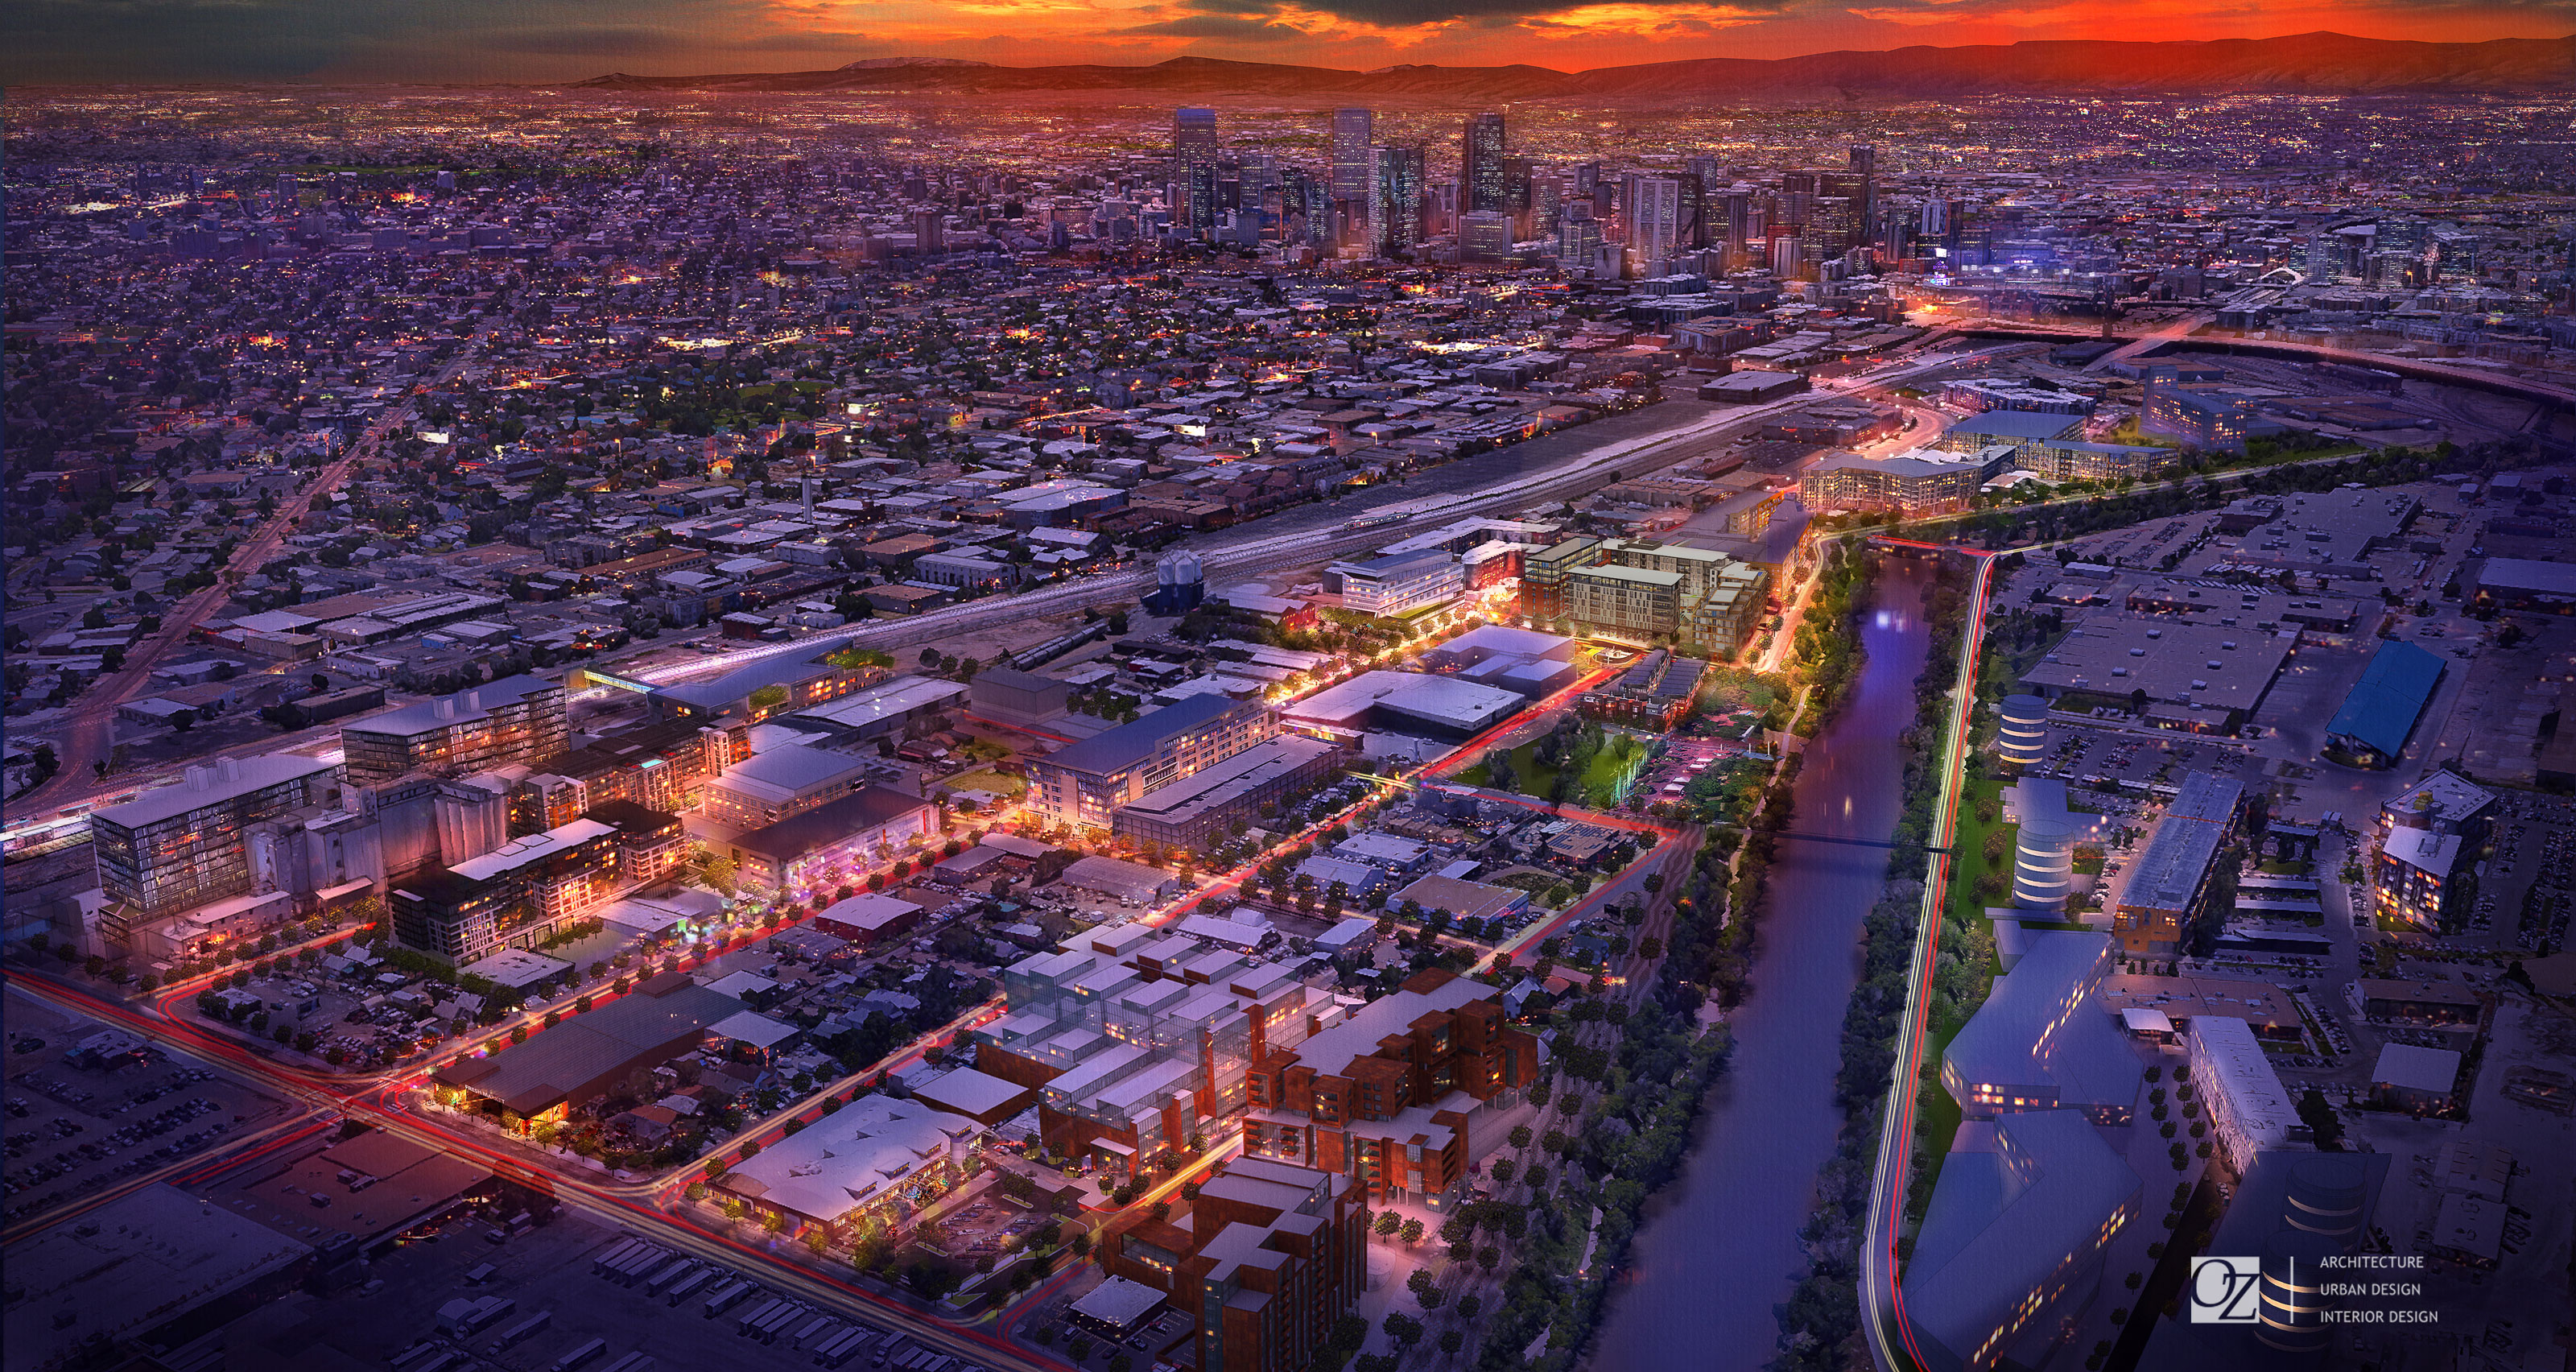 New Image of Denver's RiNo District Defines Future of Dynamic Neighborhood